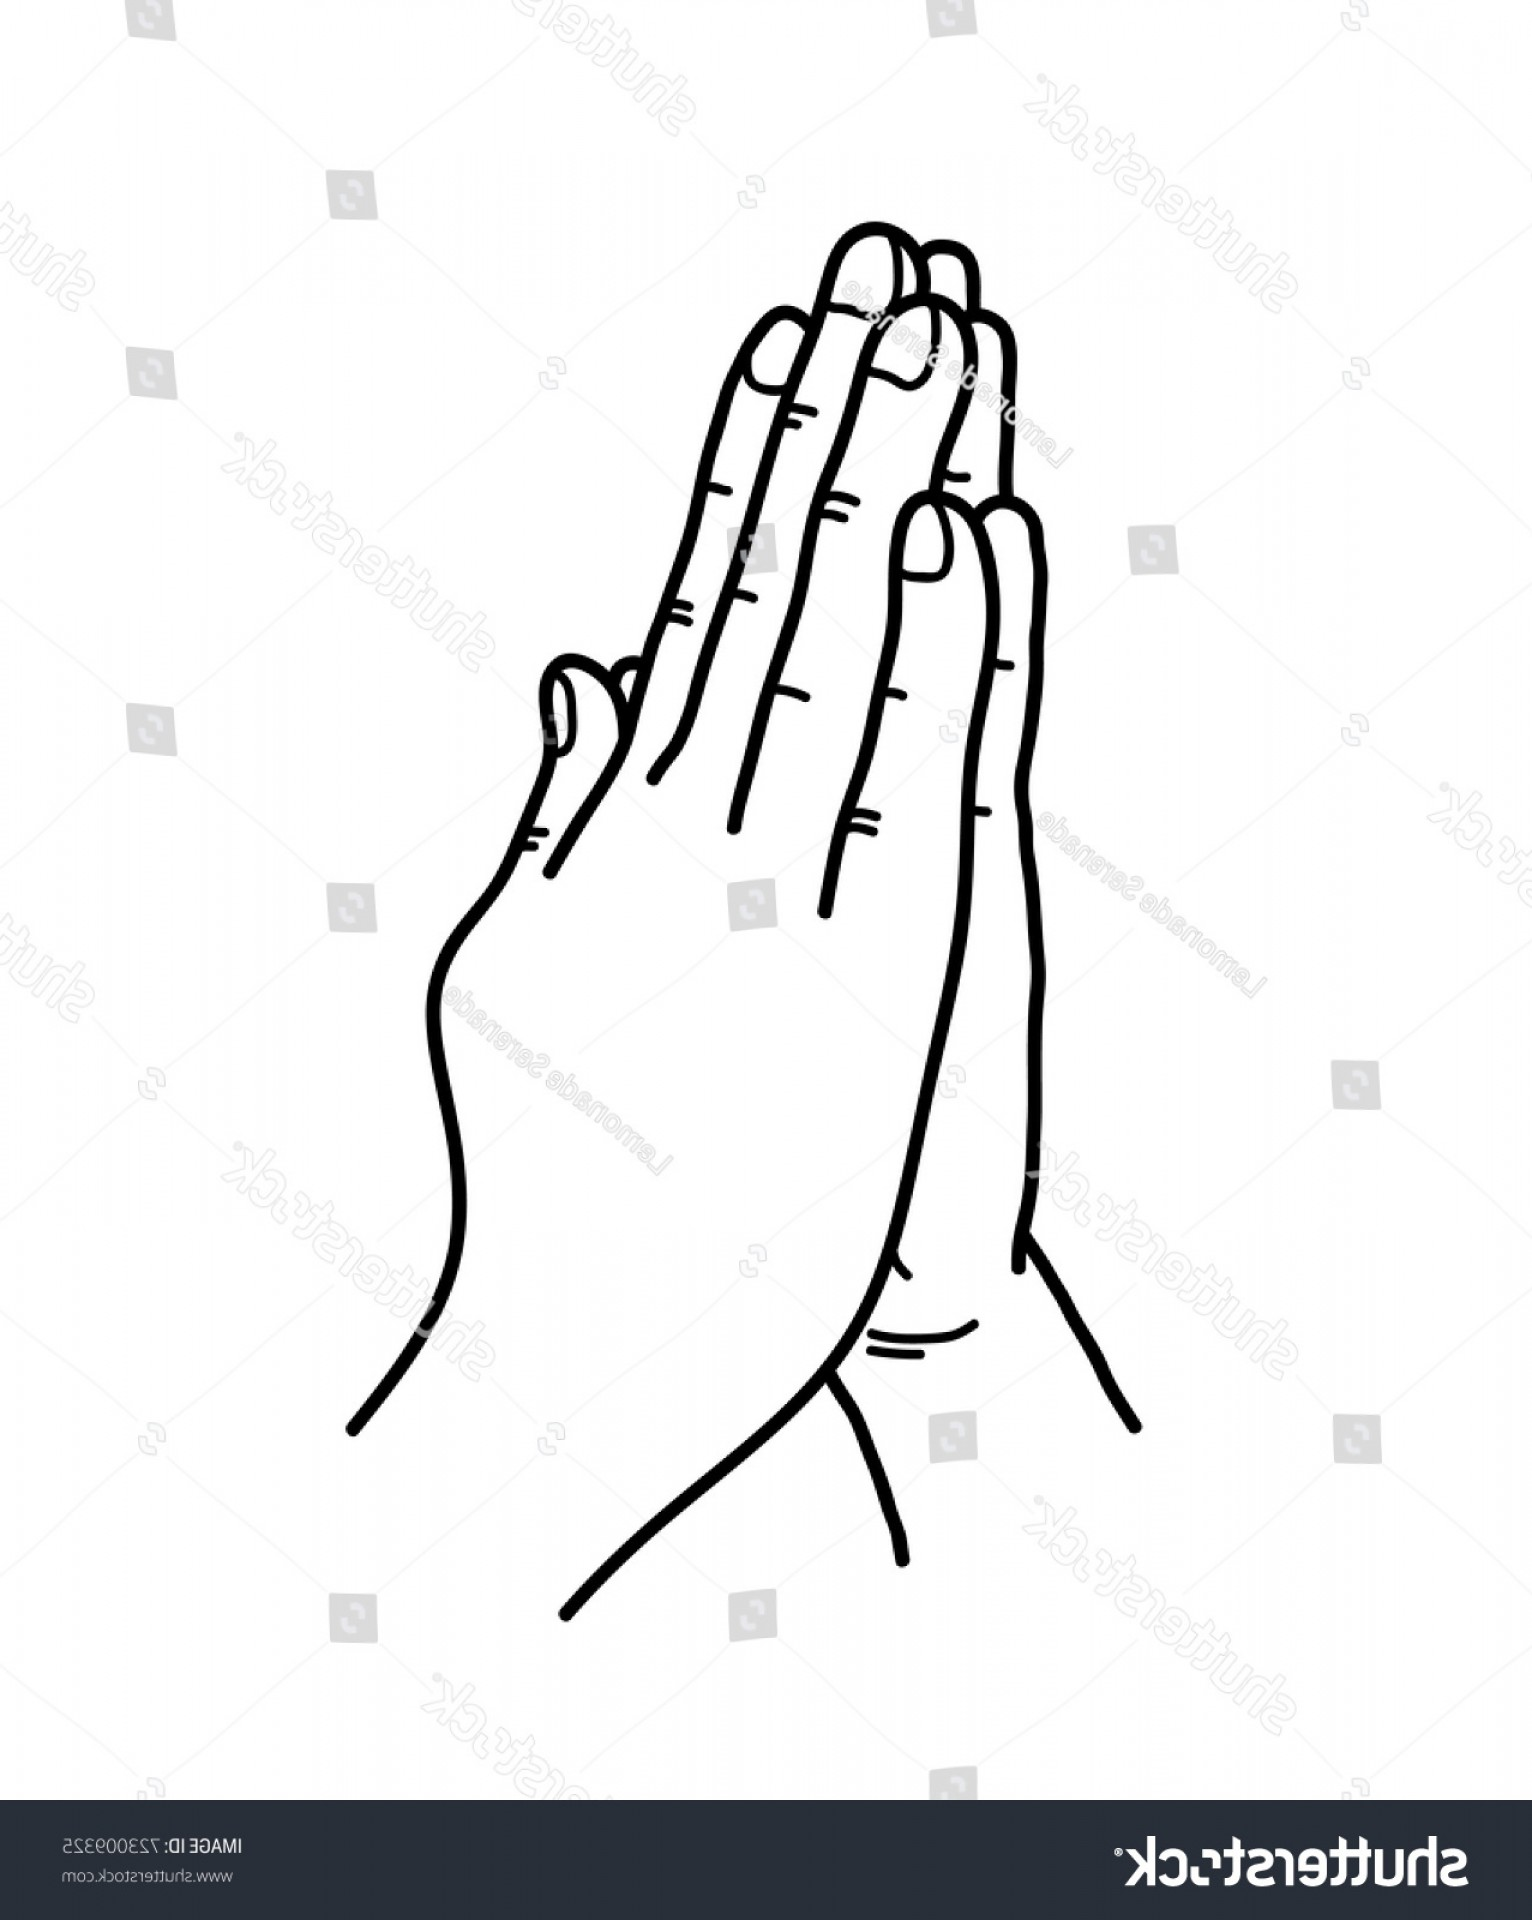 Praying Hands Vectors Shutterstock: Praying Hands Doodle Hand Drawn Vector